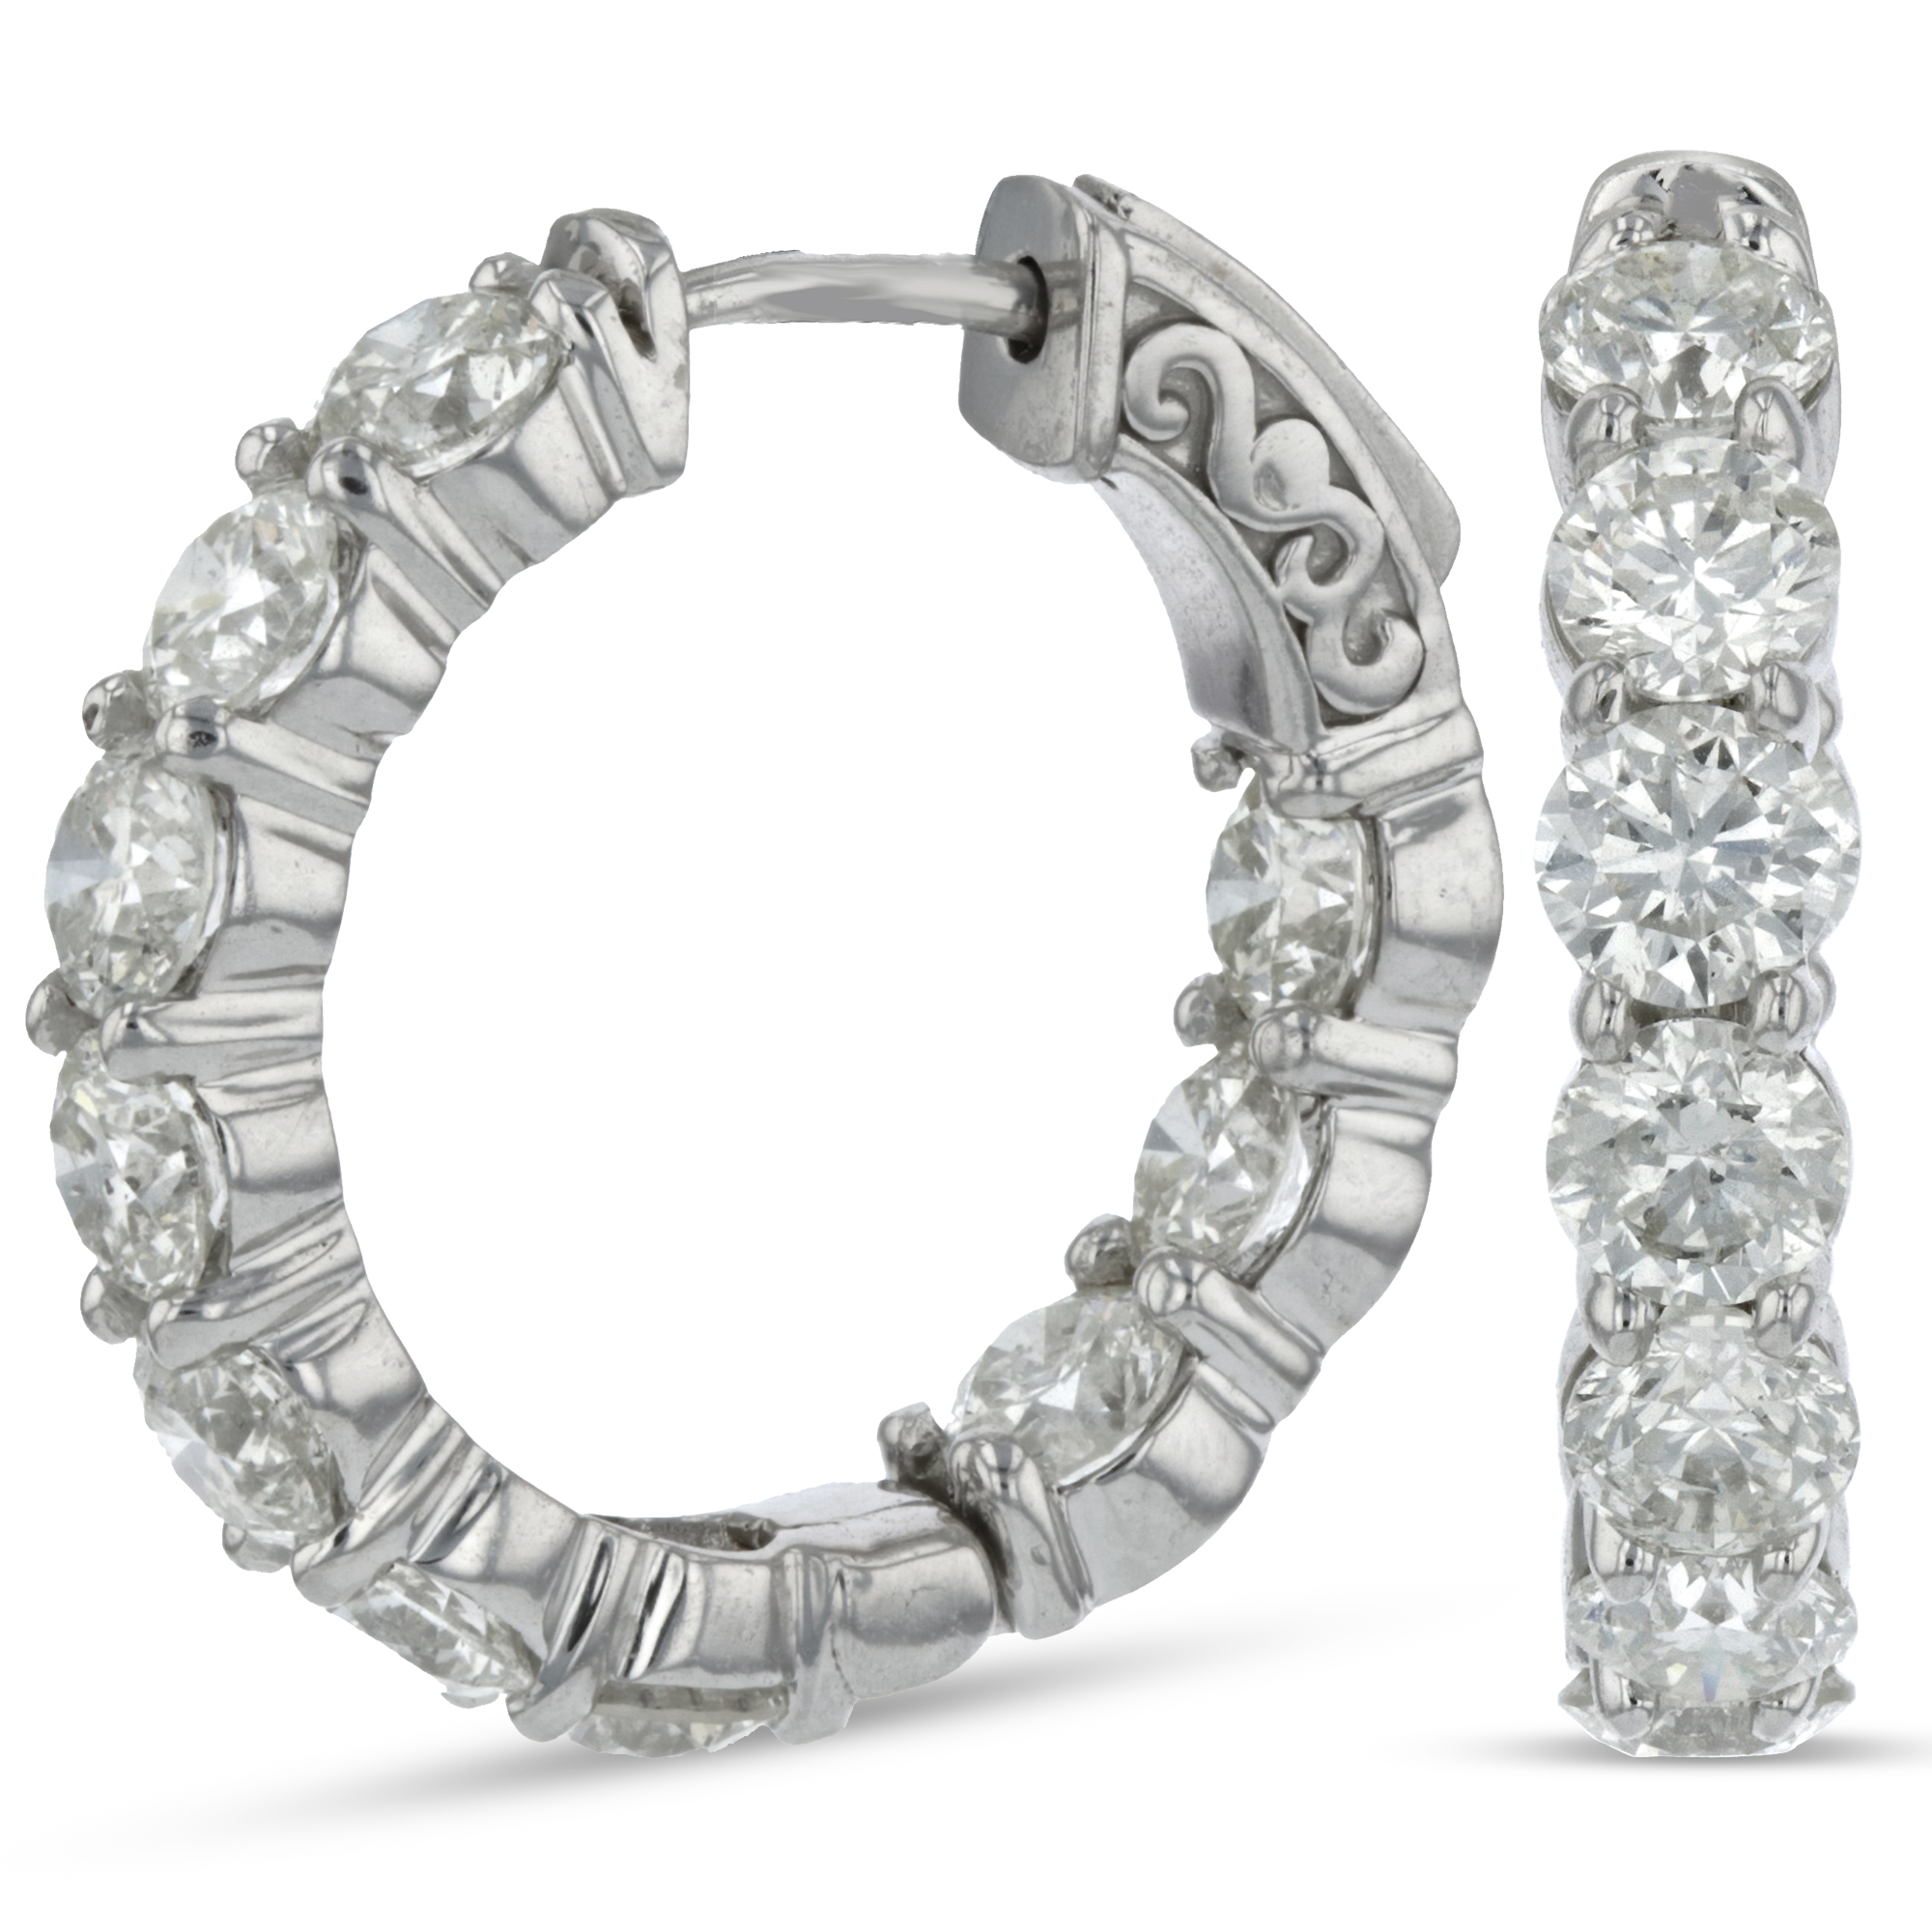 View 5.00ctw Diamond Inside Out Hoop Earrings in 14k White Gold